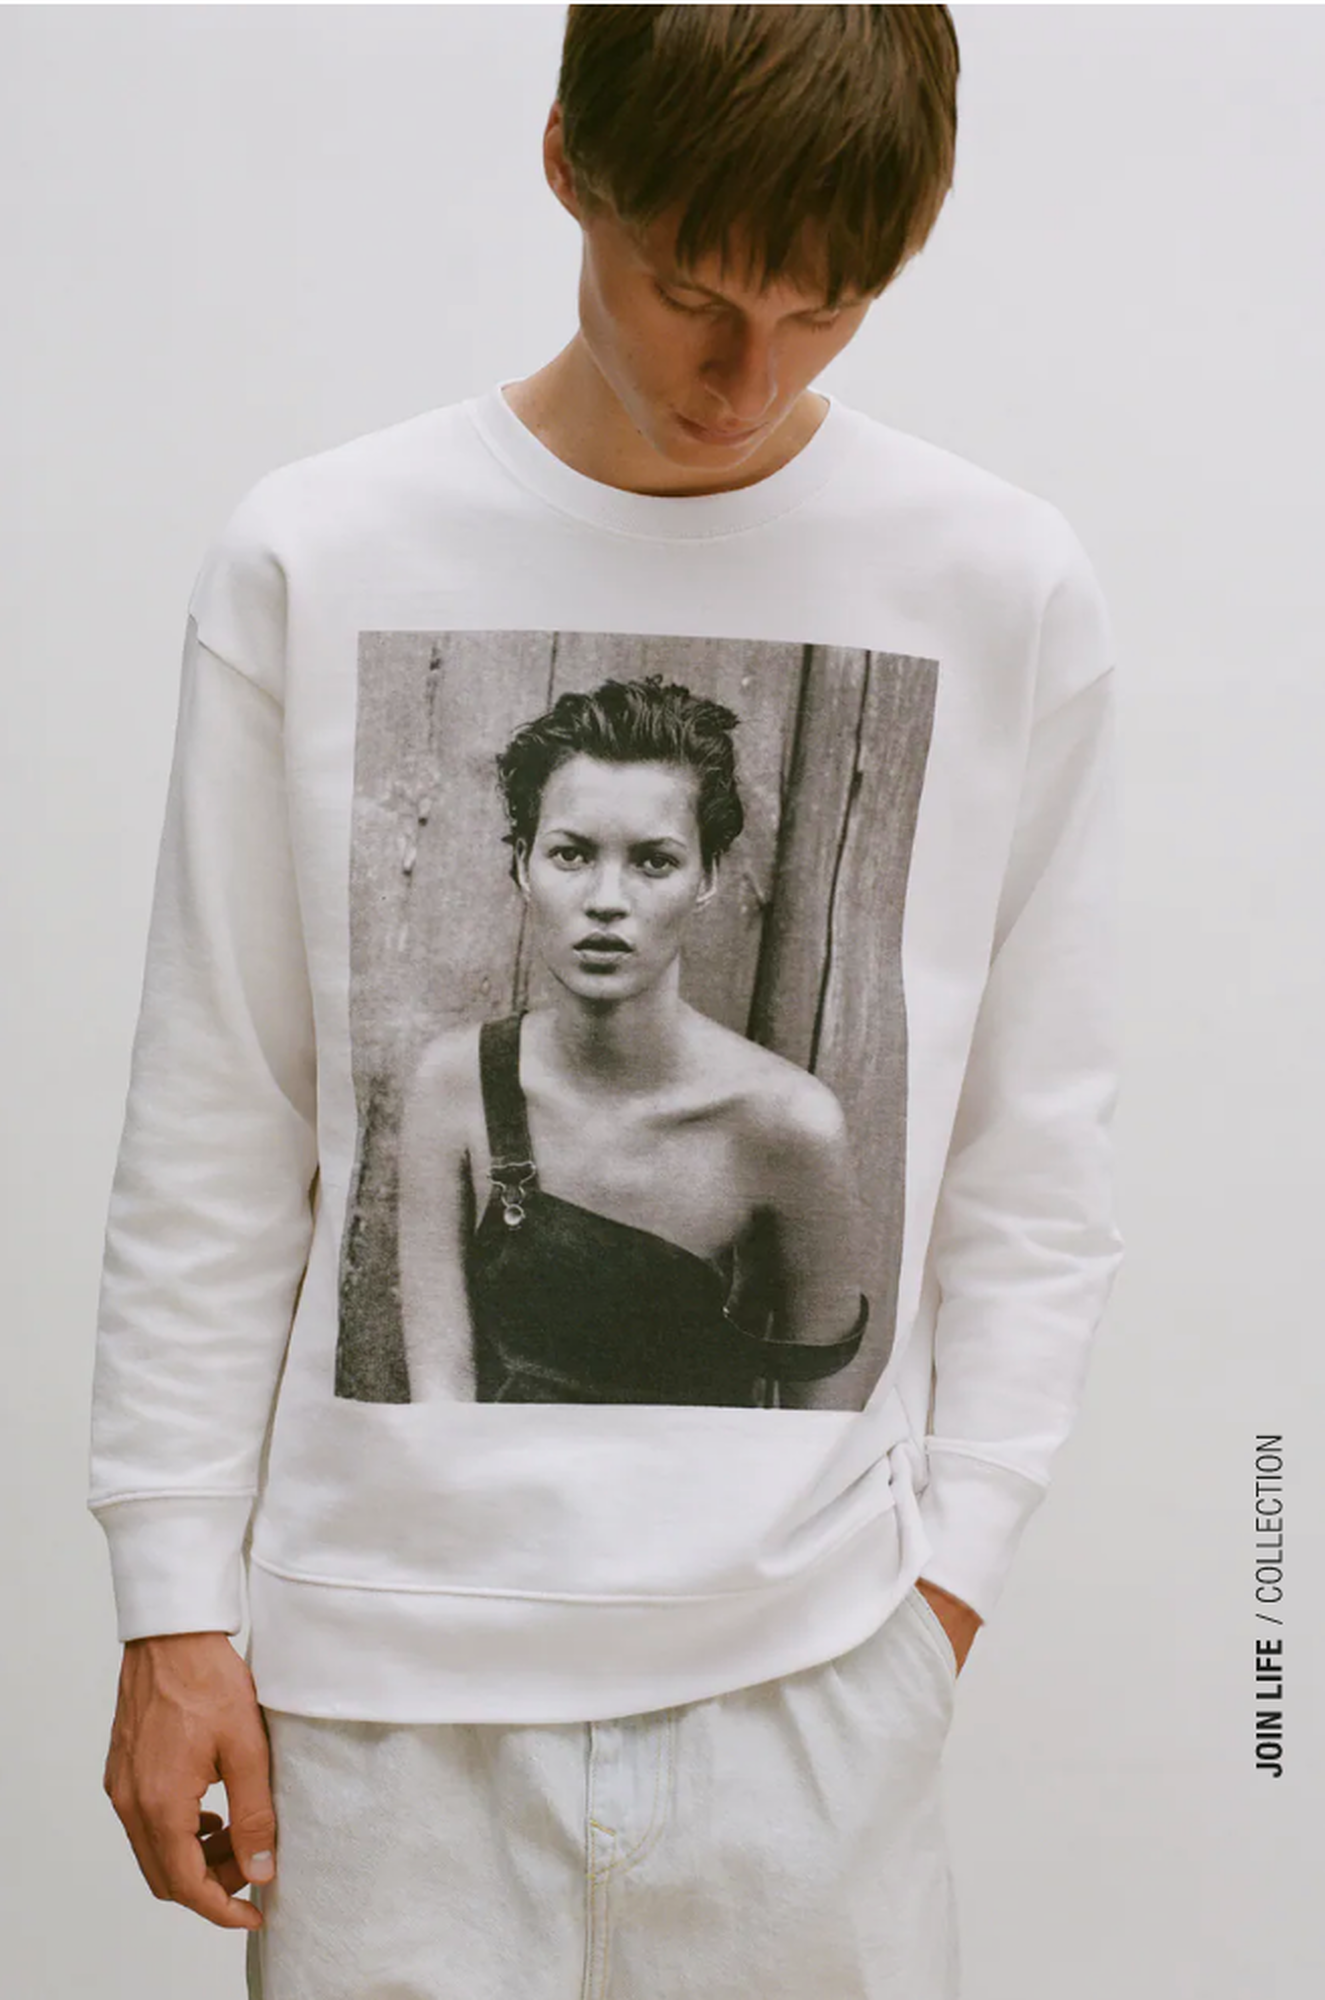 Zara's new limited edition collection pays tribute to the legendary portraits of Kate Moss and other fashion icons, photographer Peter Lindbergh, who passed away in 2019.